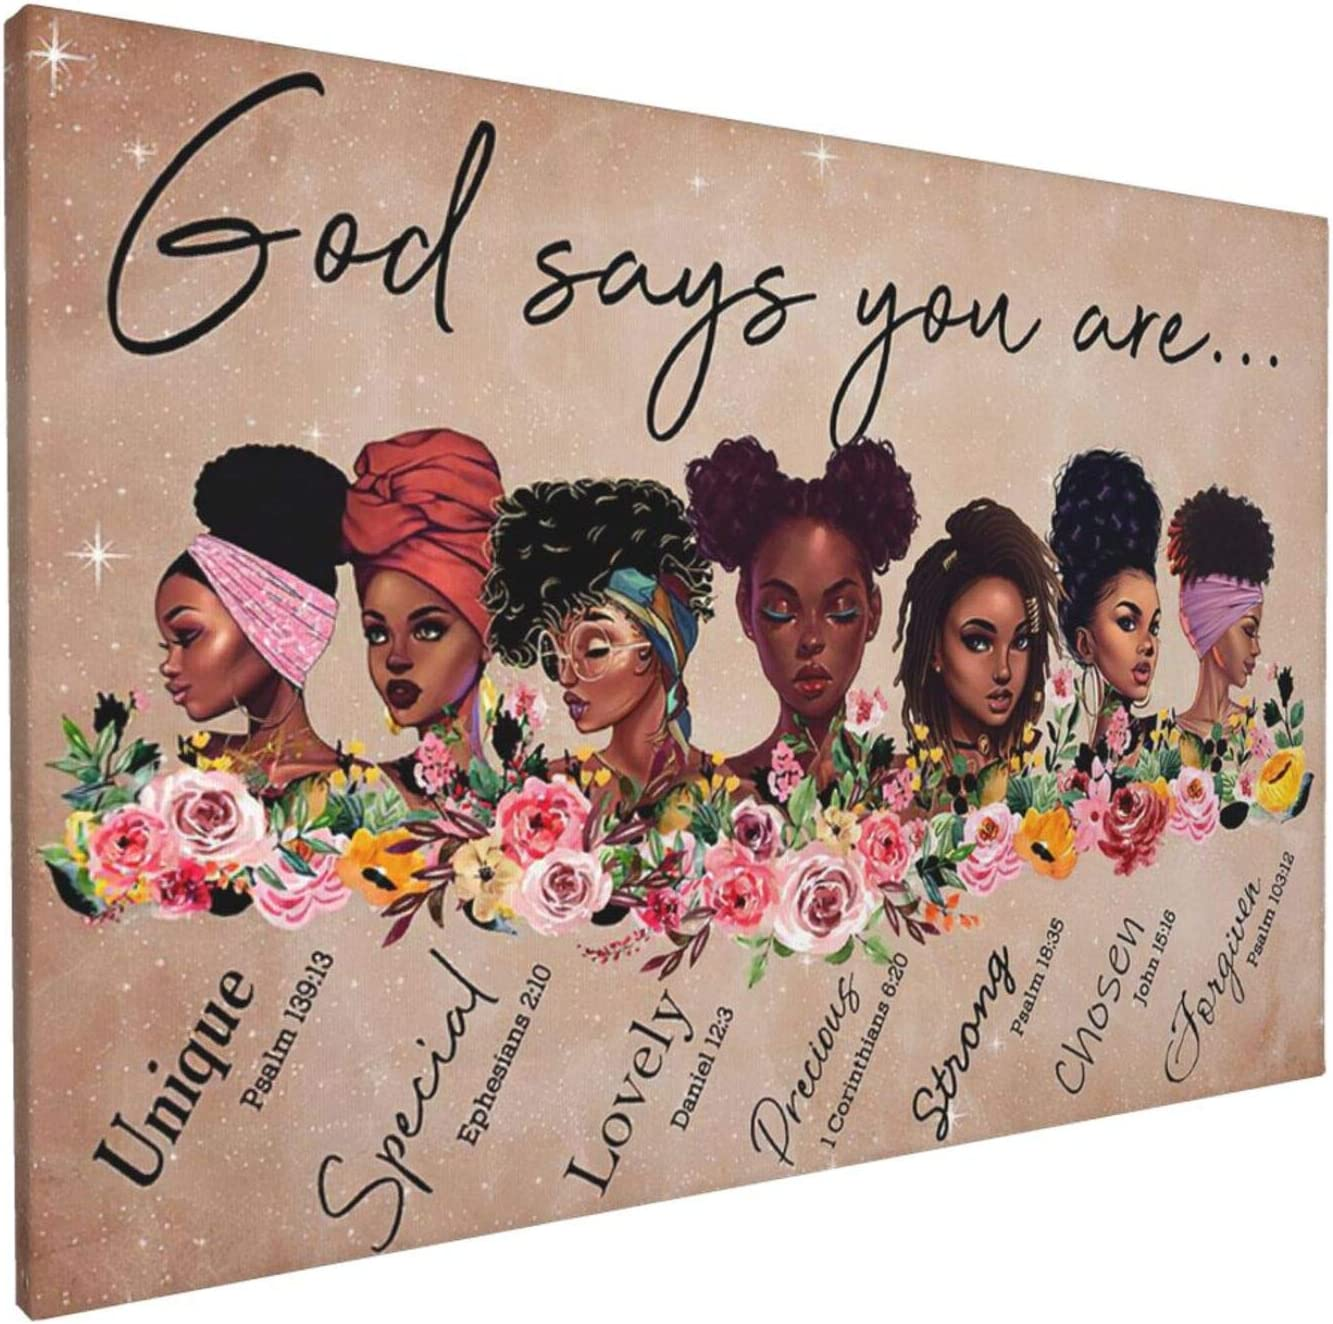 African American Wall Art Inspirational Canvas Print God Says You Are Painting Woman Black Art Home Decor For Bathroom Living Room Bedroom Framed Ready To Hang 12x18 Inch